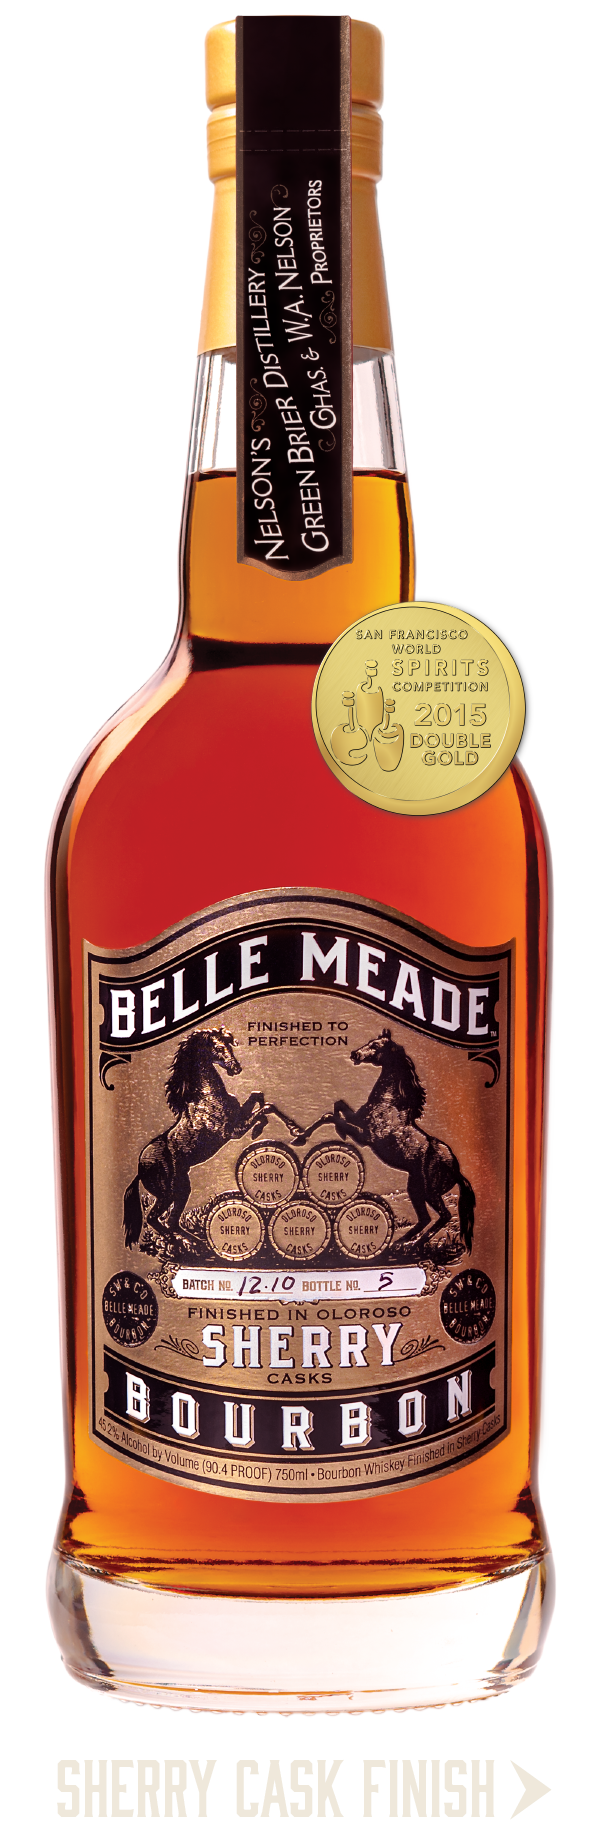 Belle Meade Bourbon_Sherry Cask Finish.png